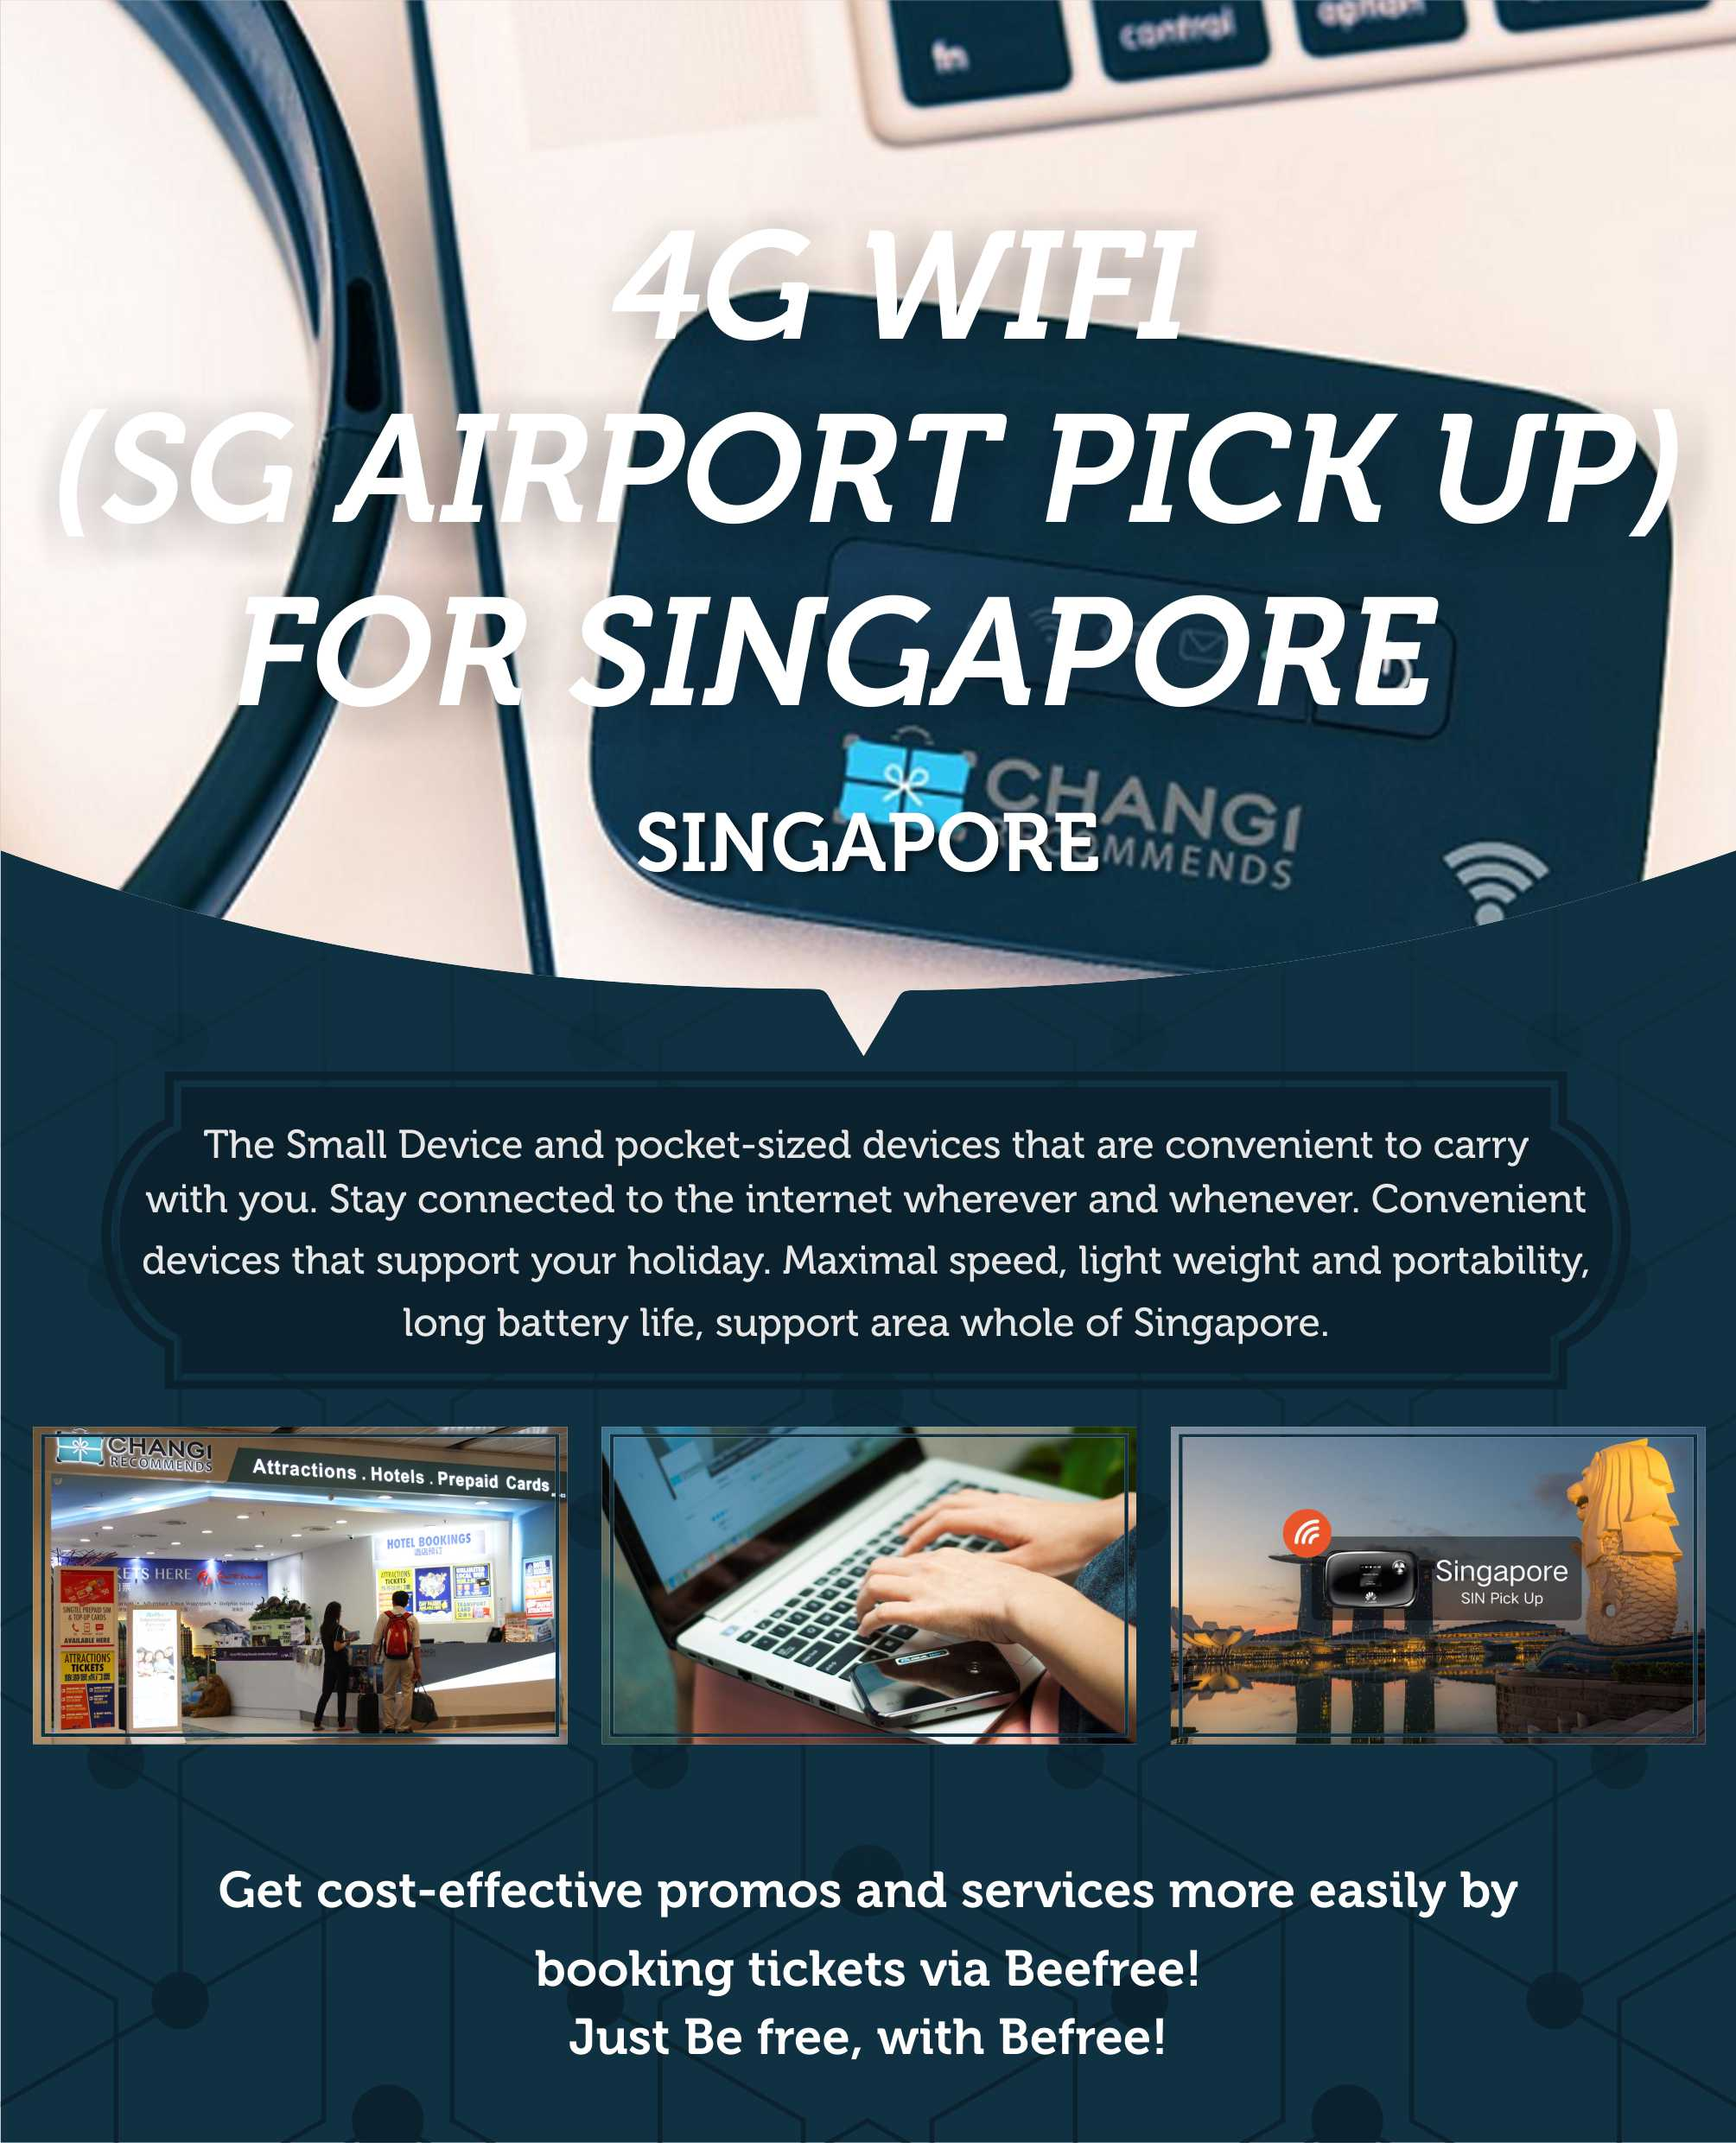 4g-sim-card-sg-airport-pick-up-for-singapore